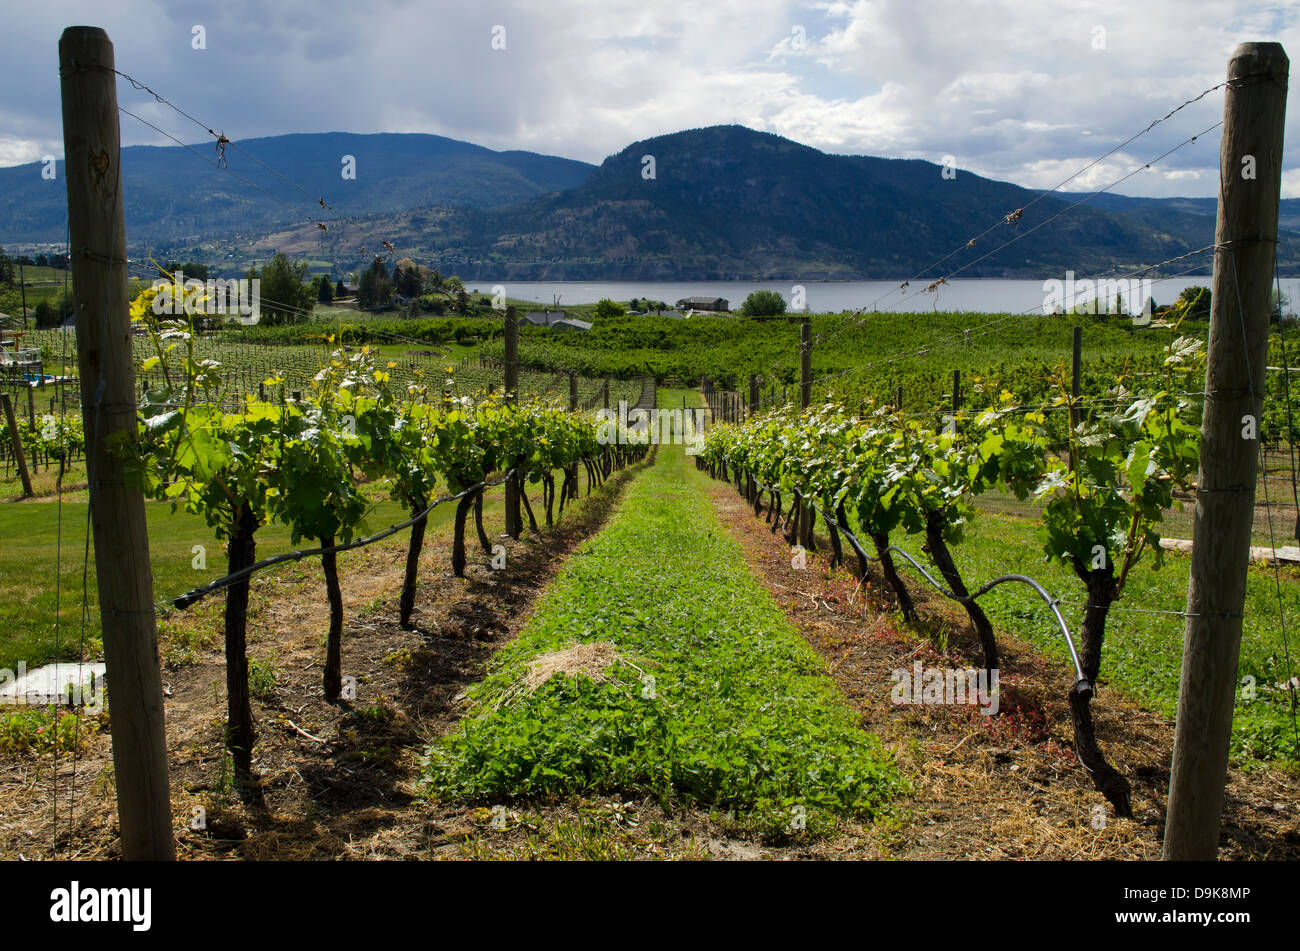 rows-of-grapevines-in-a-vineyard-lead-do